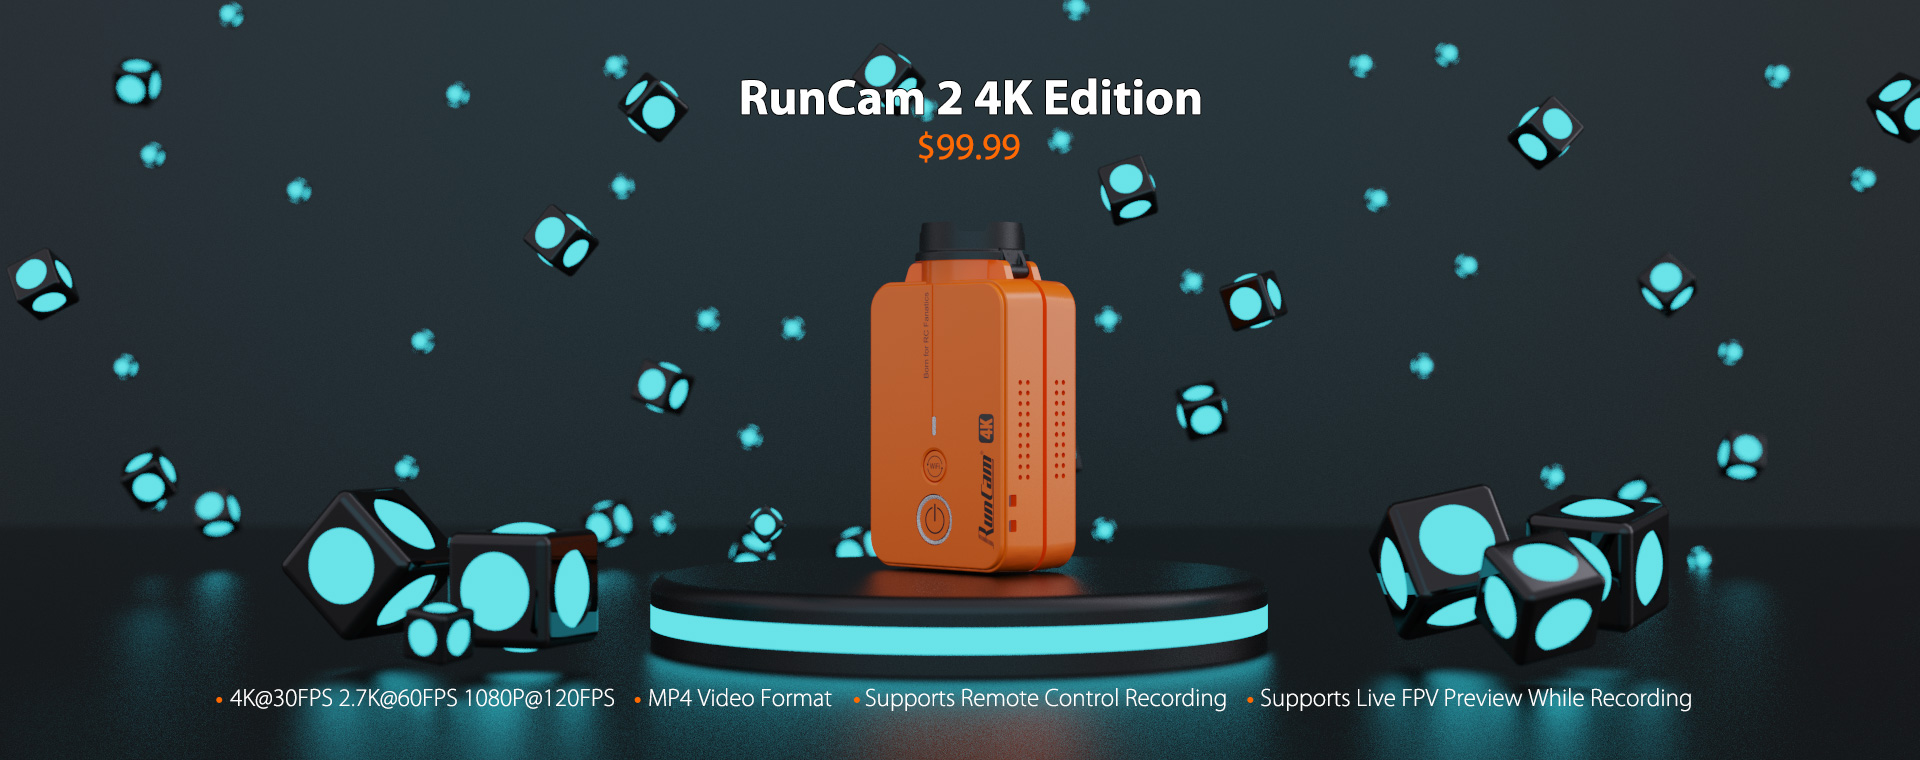 RunCam2 4K Edition